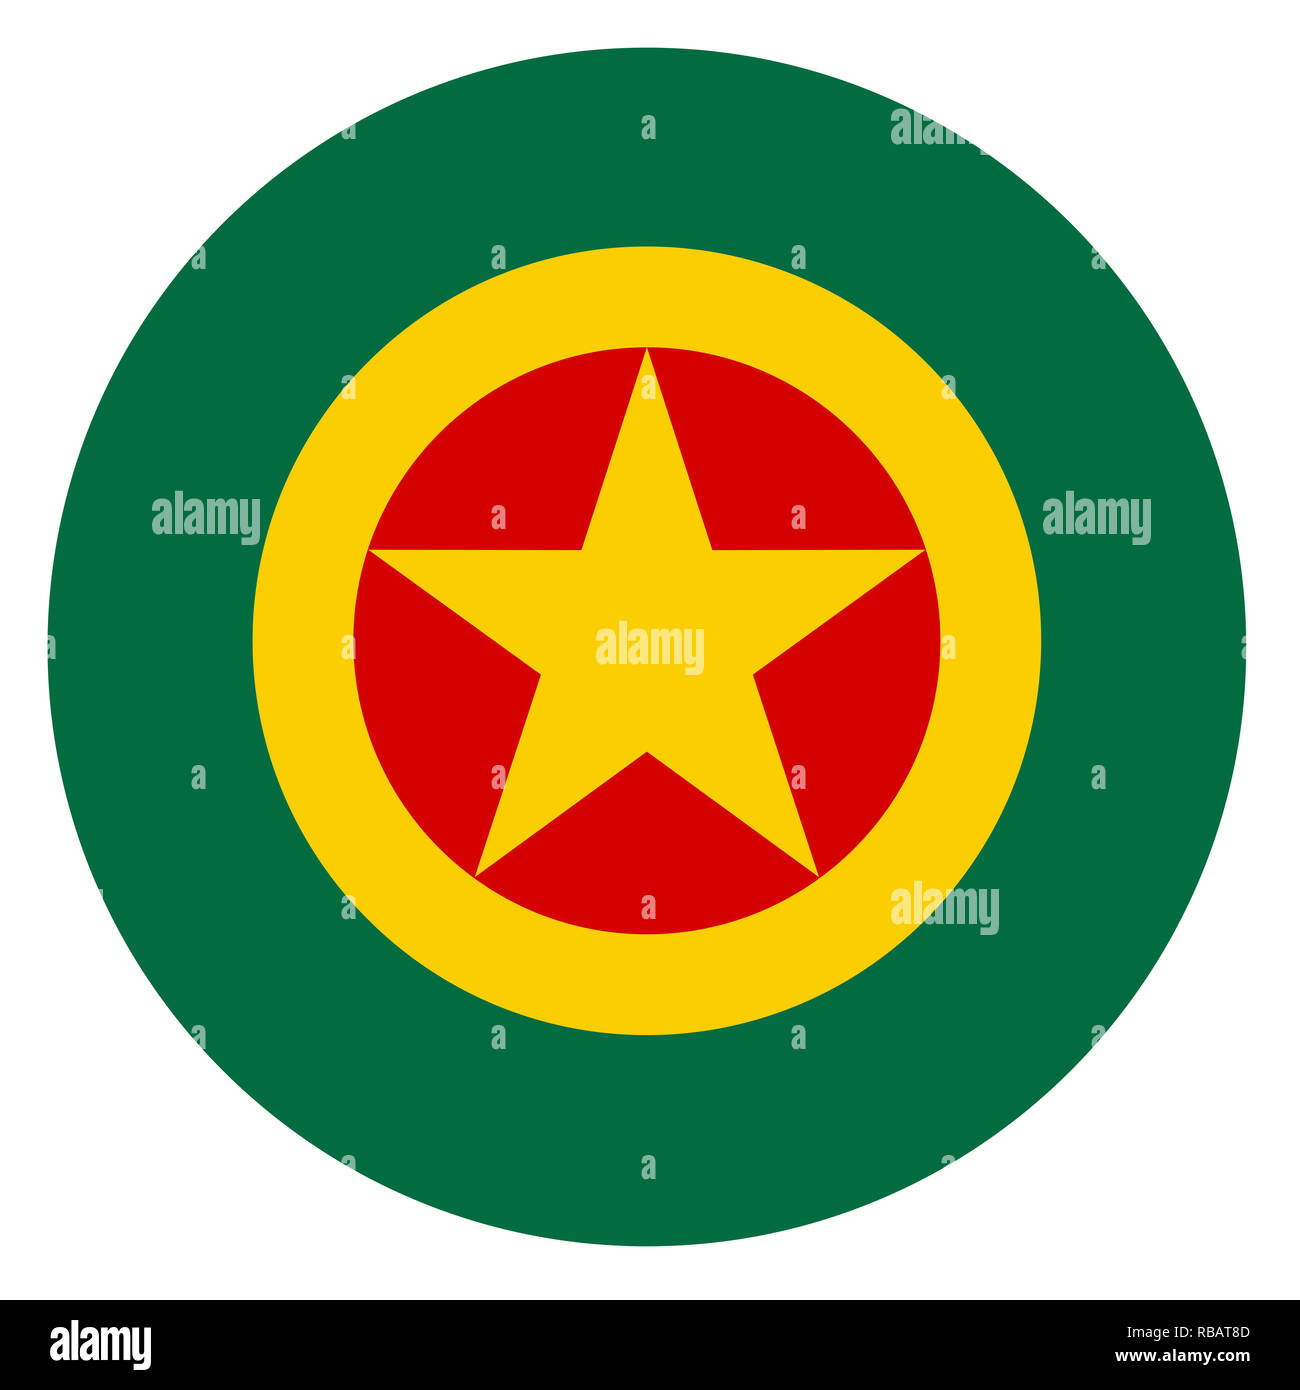 Ethiopia country roundel flag based round symbol - Stock Image